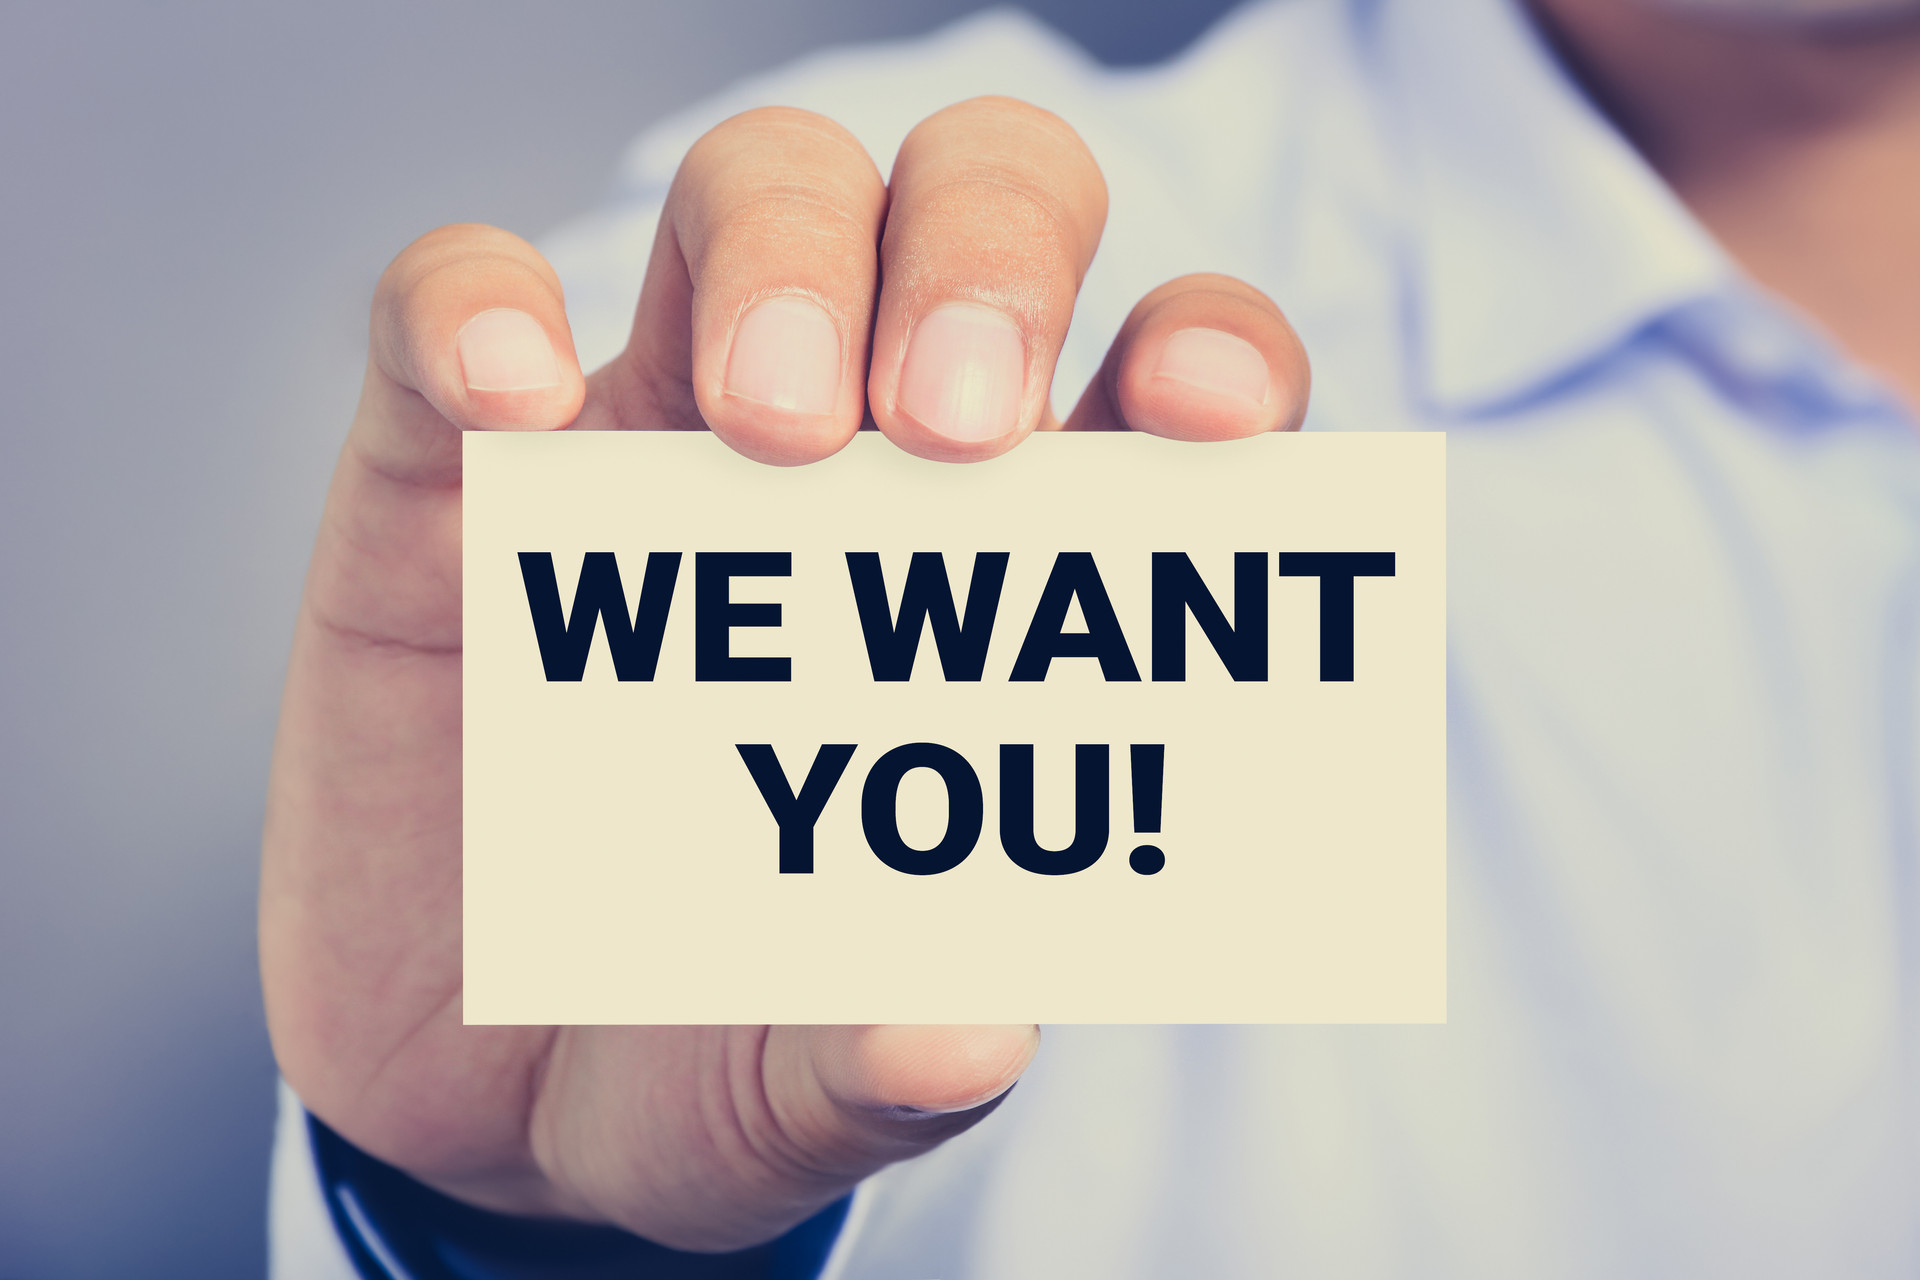 WE WANT YOU! message on the card shown b